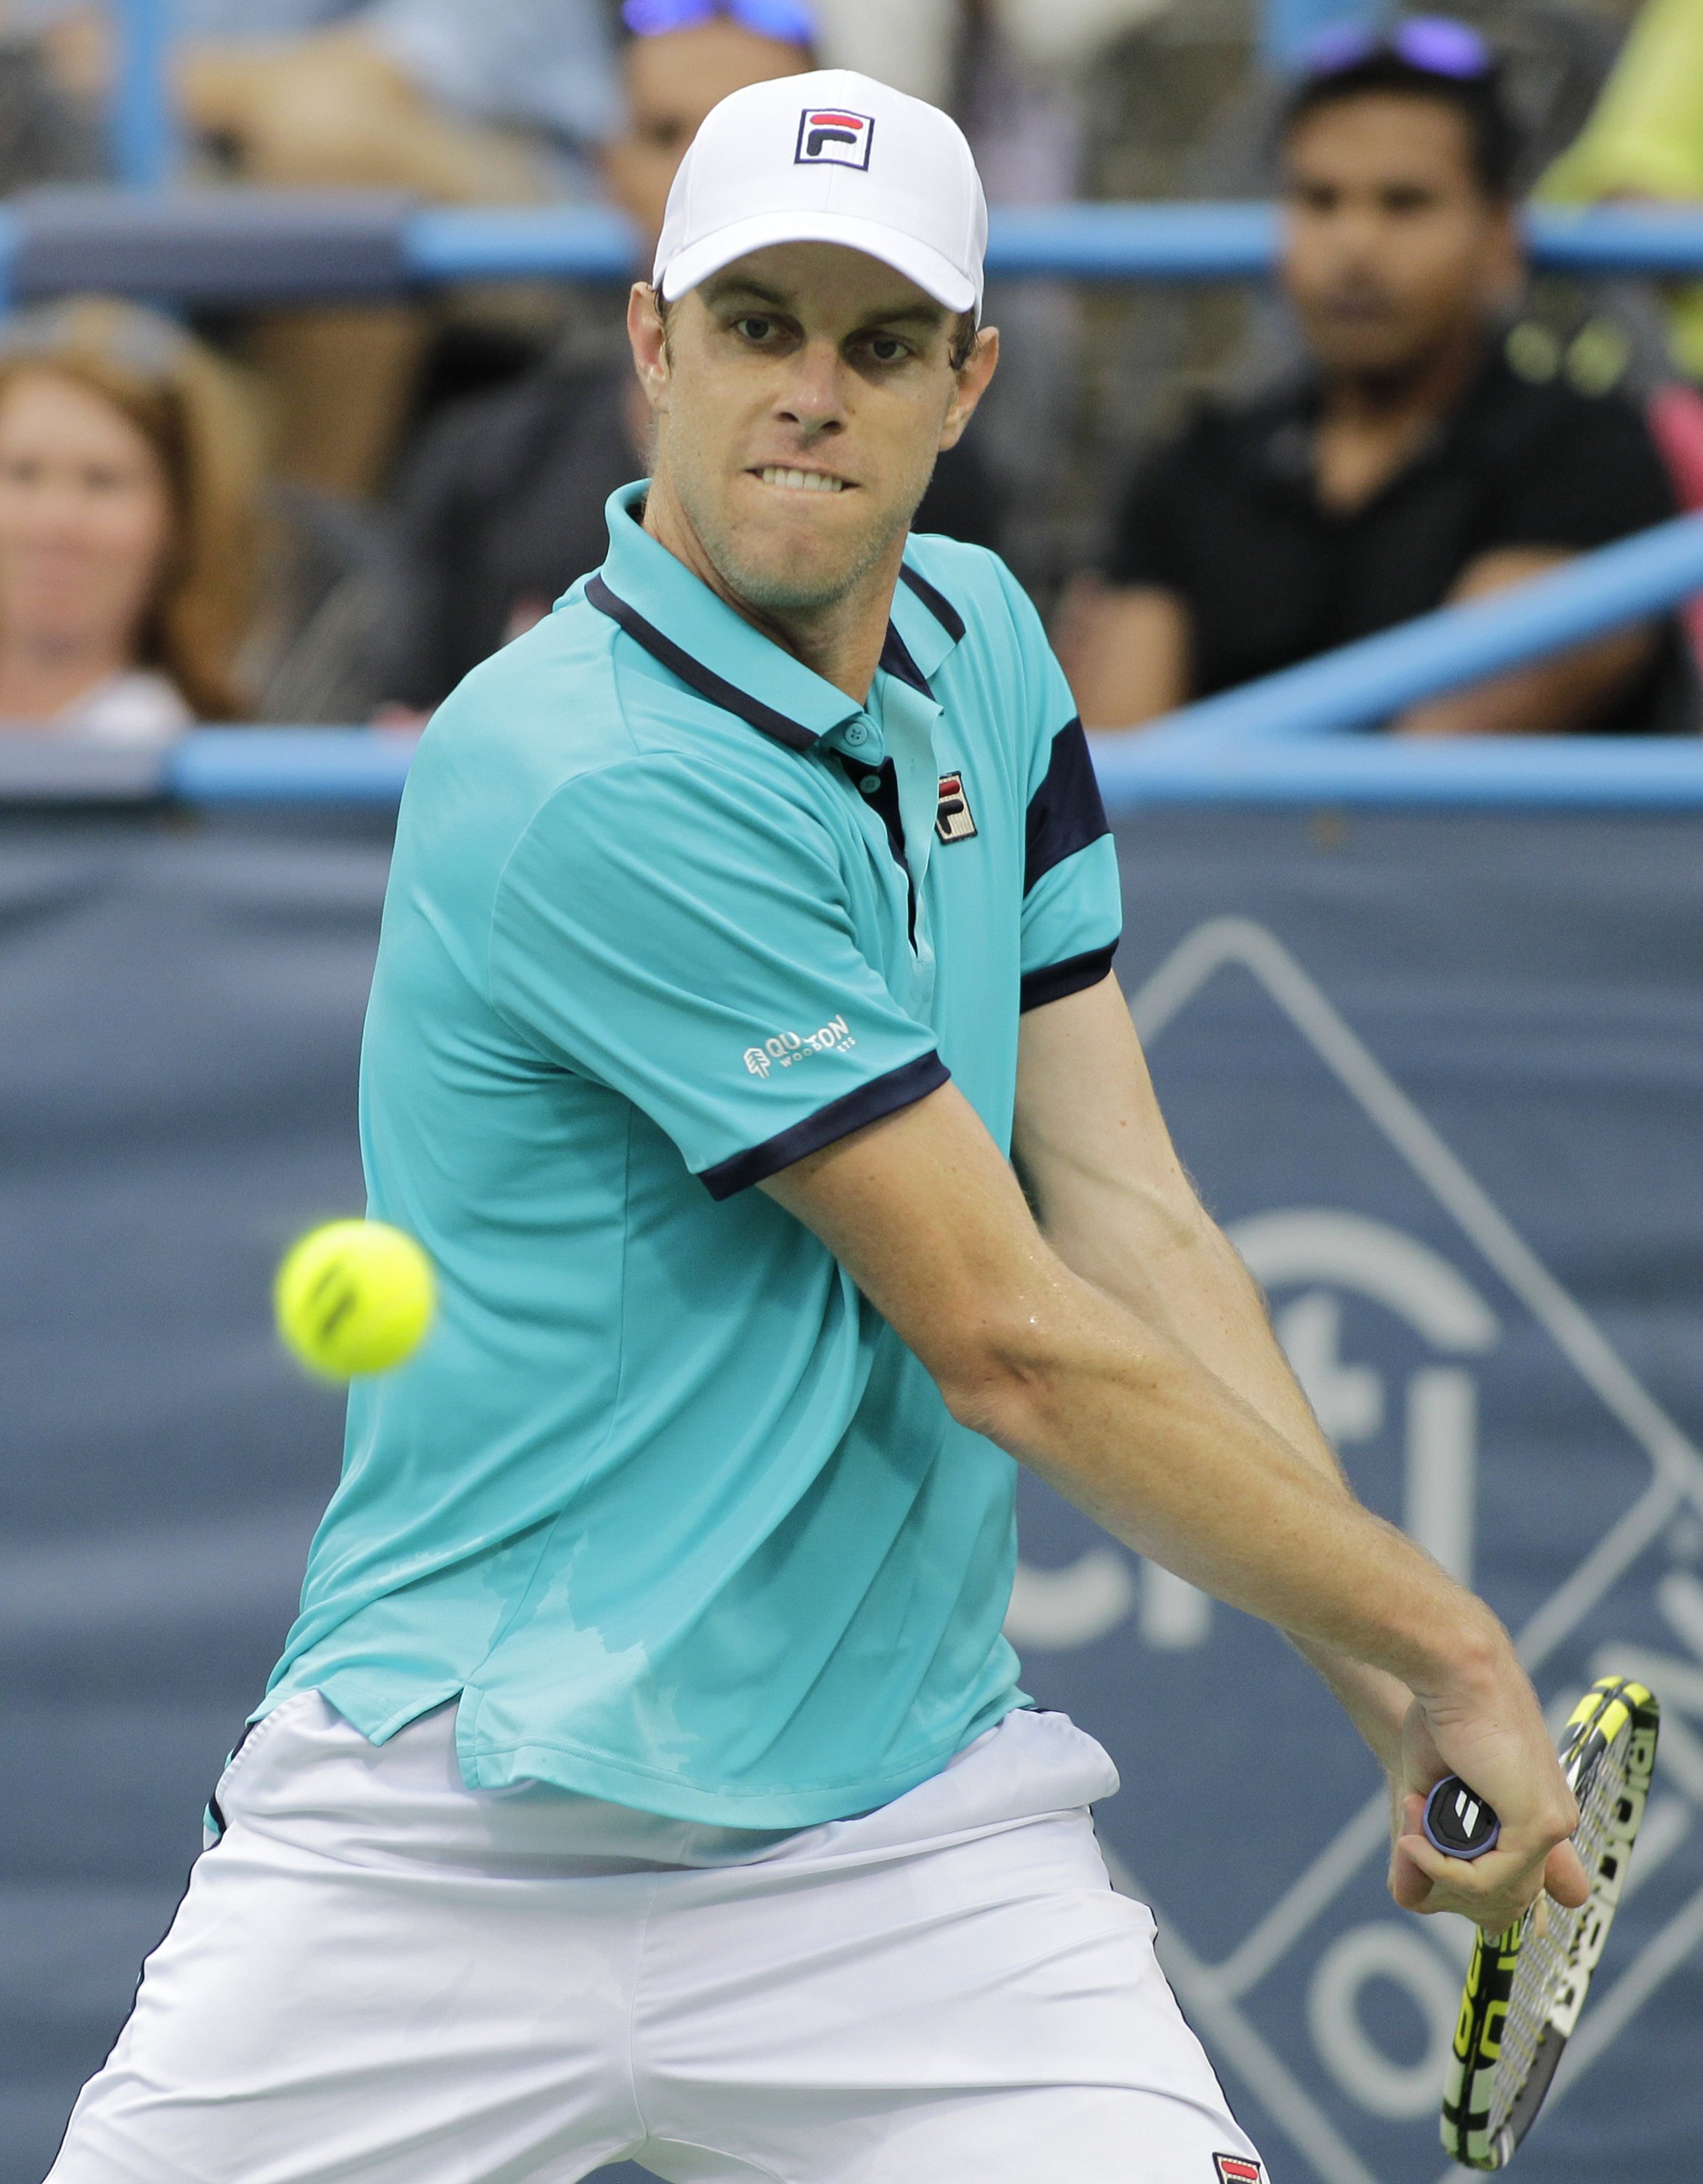 Sam Querrey, of the United States, returns the ball to Marin Cilic, of Croatia, during the Citi Open tennis tournament, Thursday, Aug. 6, 2015, in Washington. (AP Photo/Luis M. Alvarez)